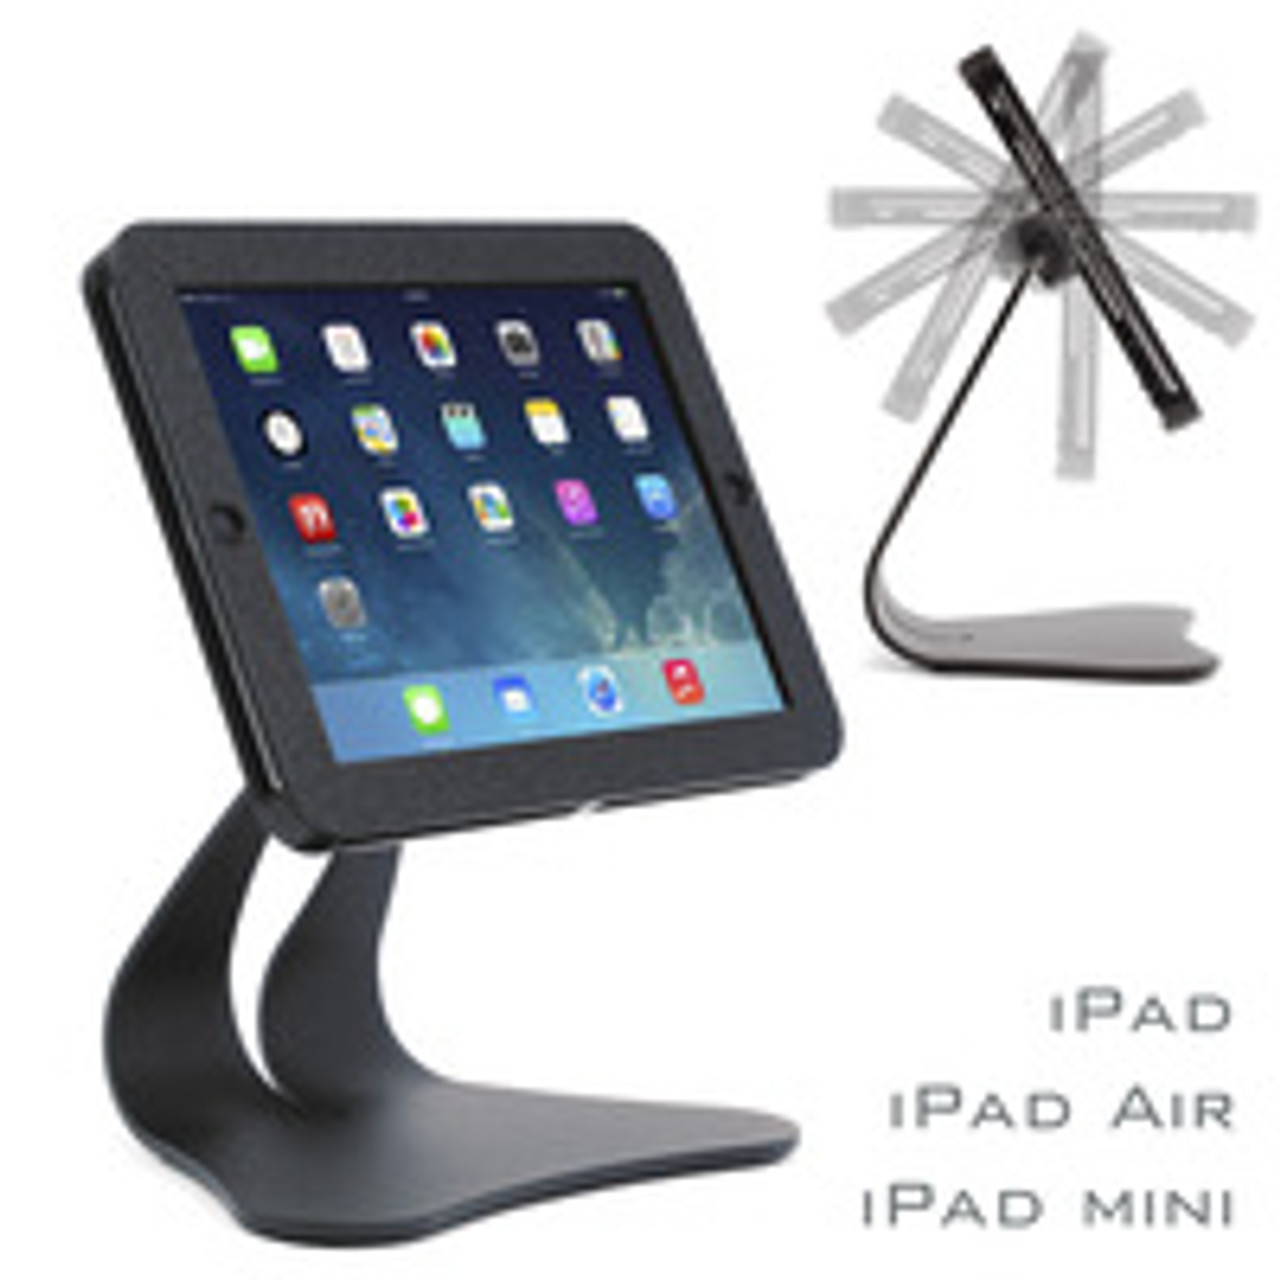 Product Release - iPad POS Stand - EnCloz